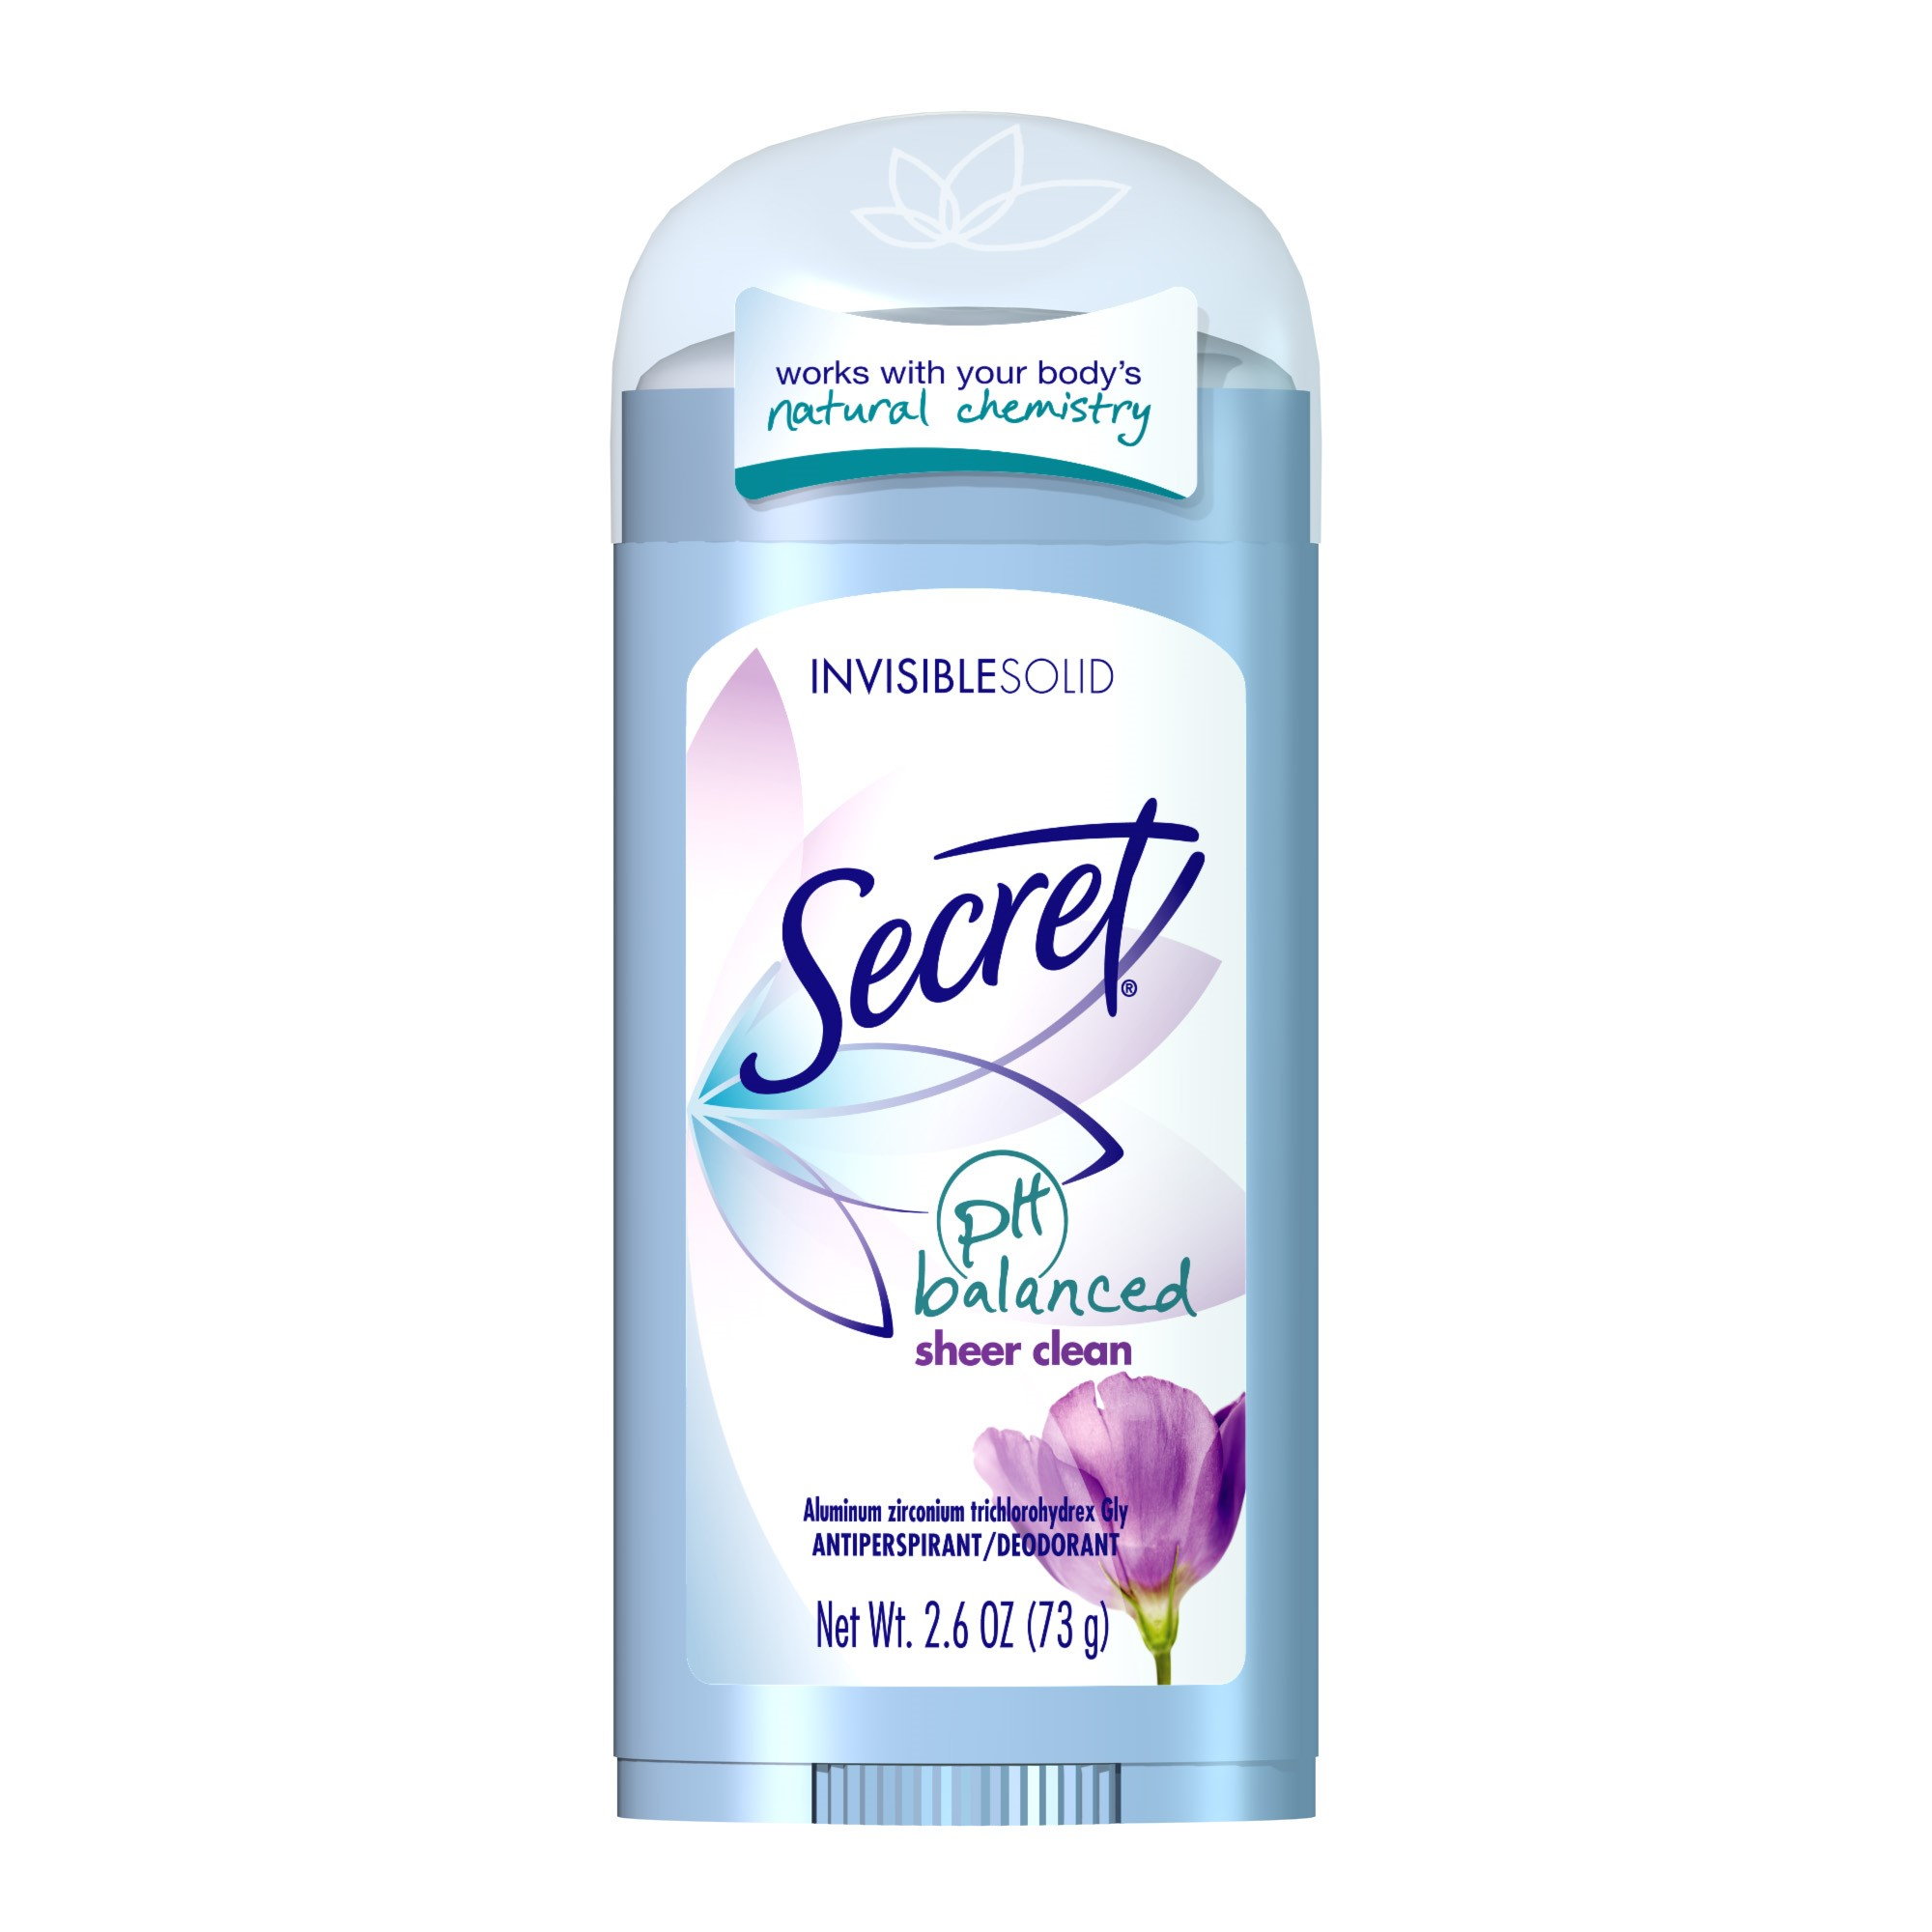 Secret® pH Balanced Sheer Clean Invisible Solid Antiperspirant/Deodorant 2.6 oz. Stick